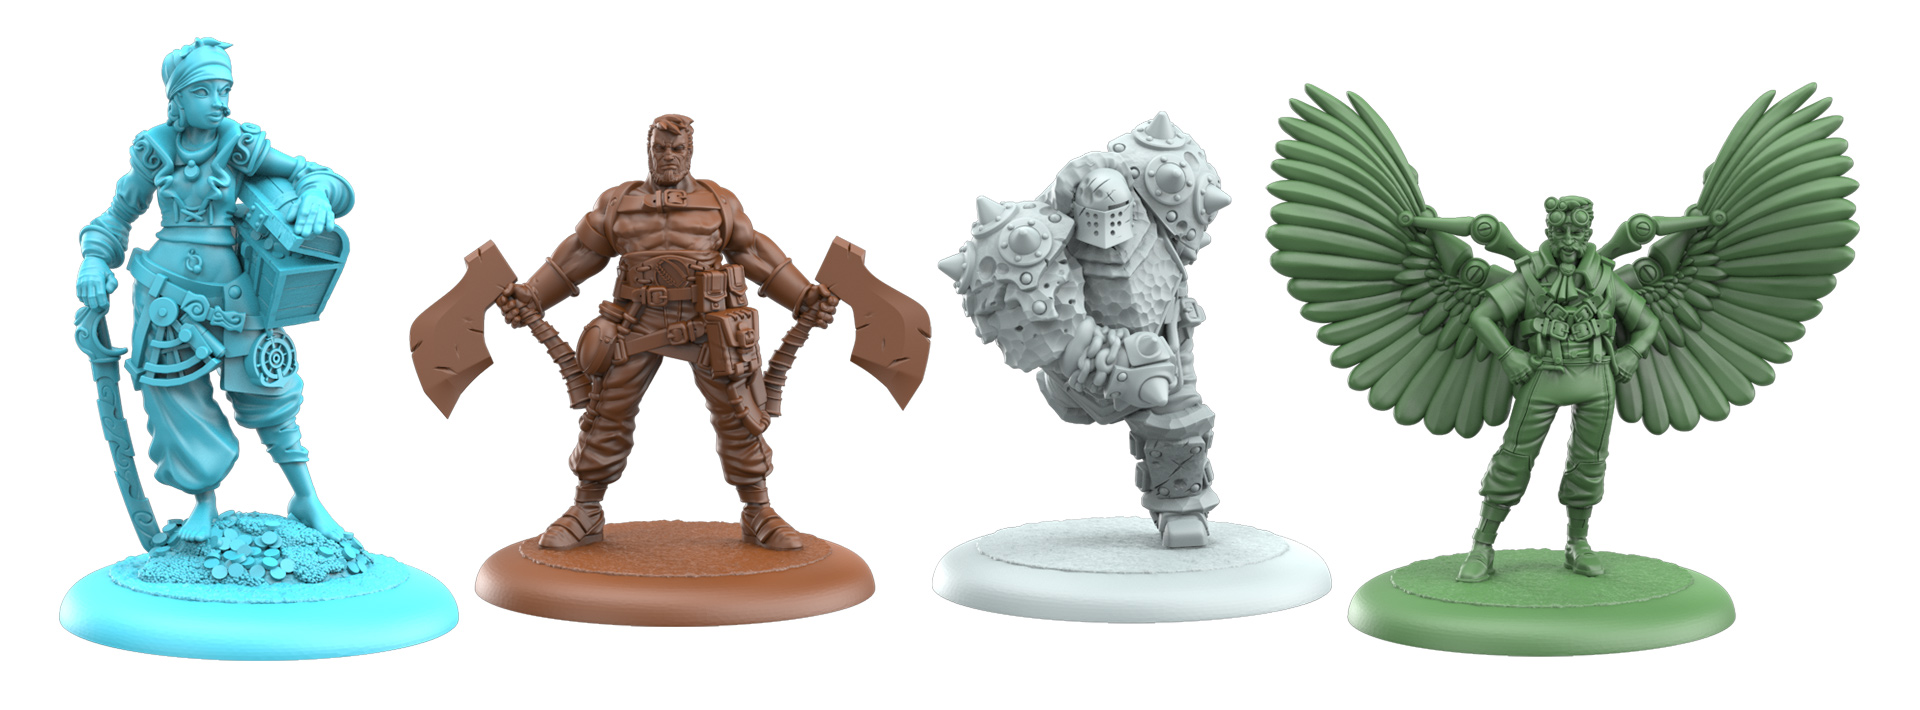 3D Renders of the Limited Edition Miniatures